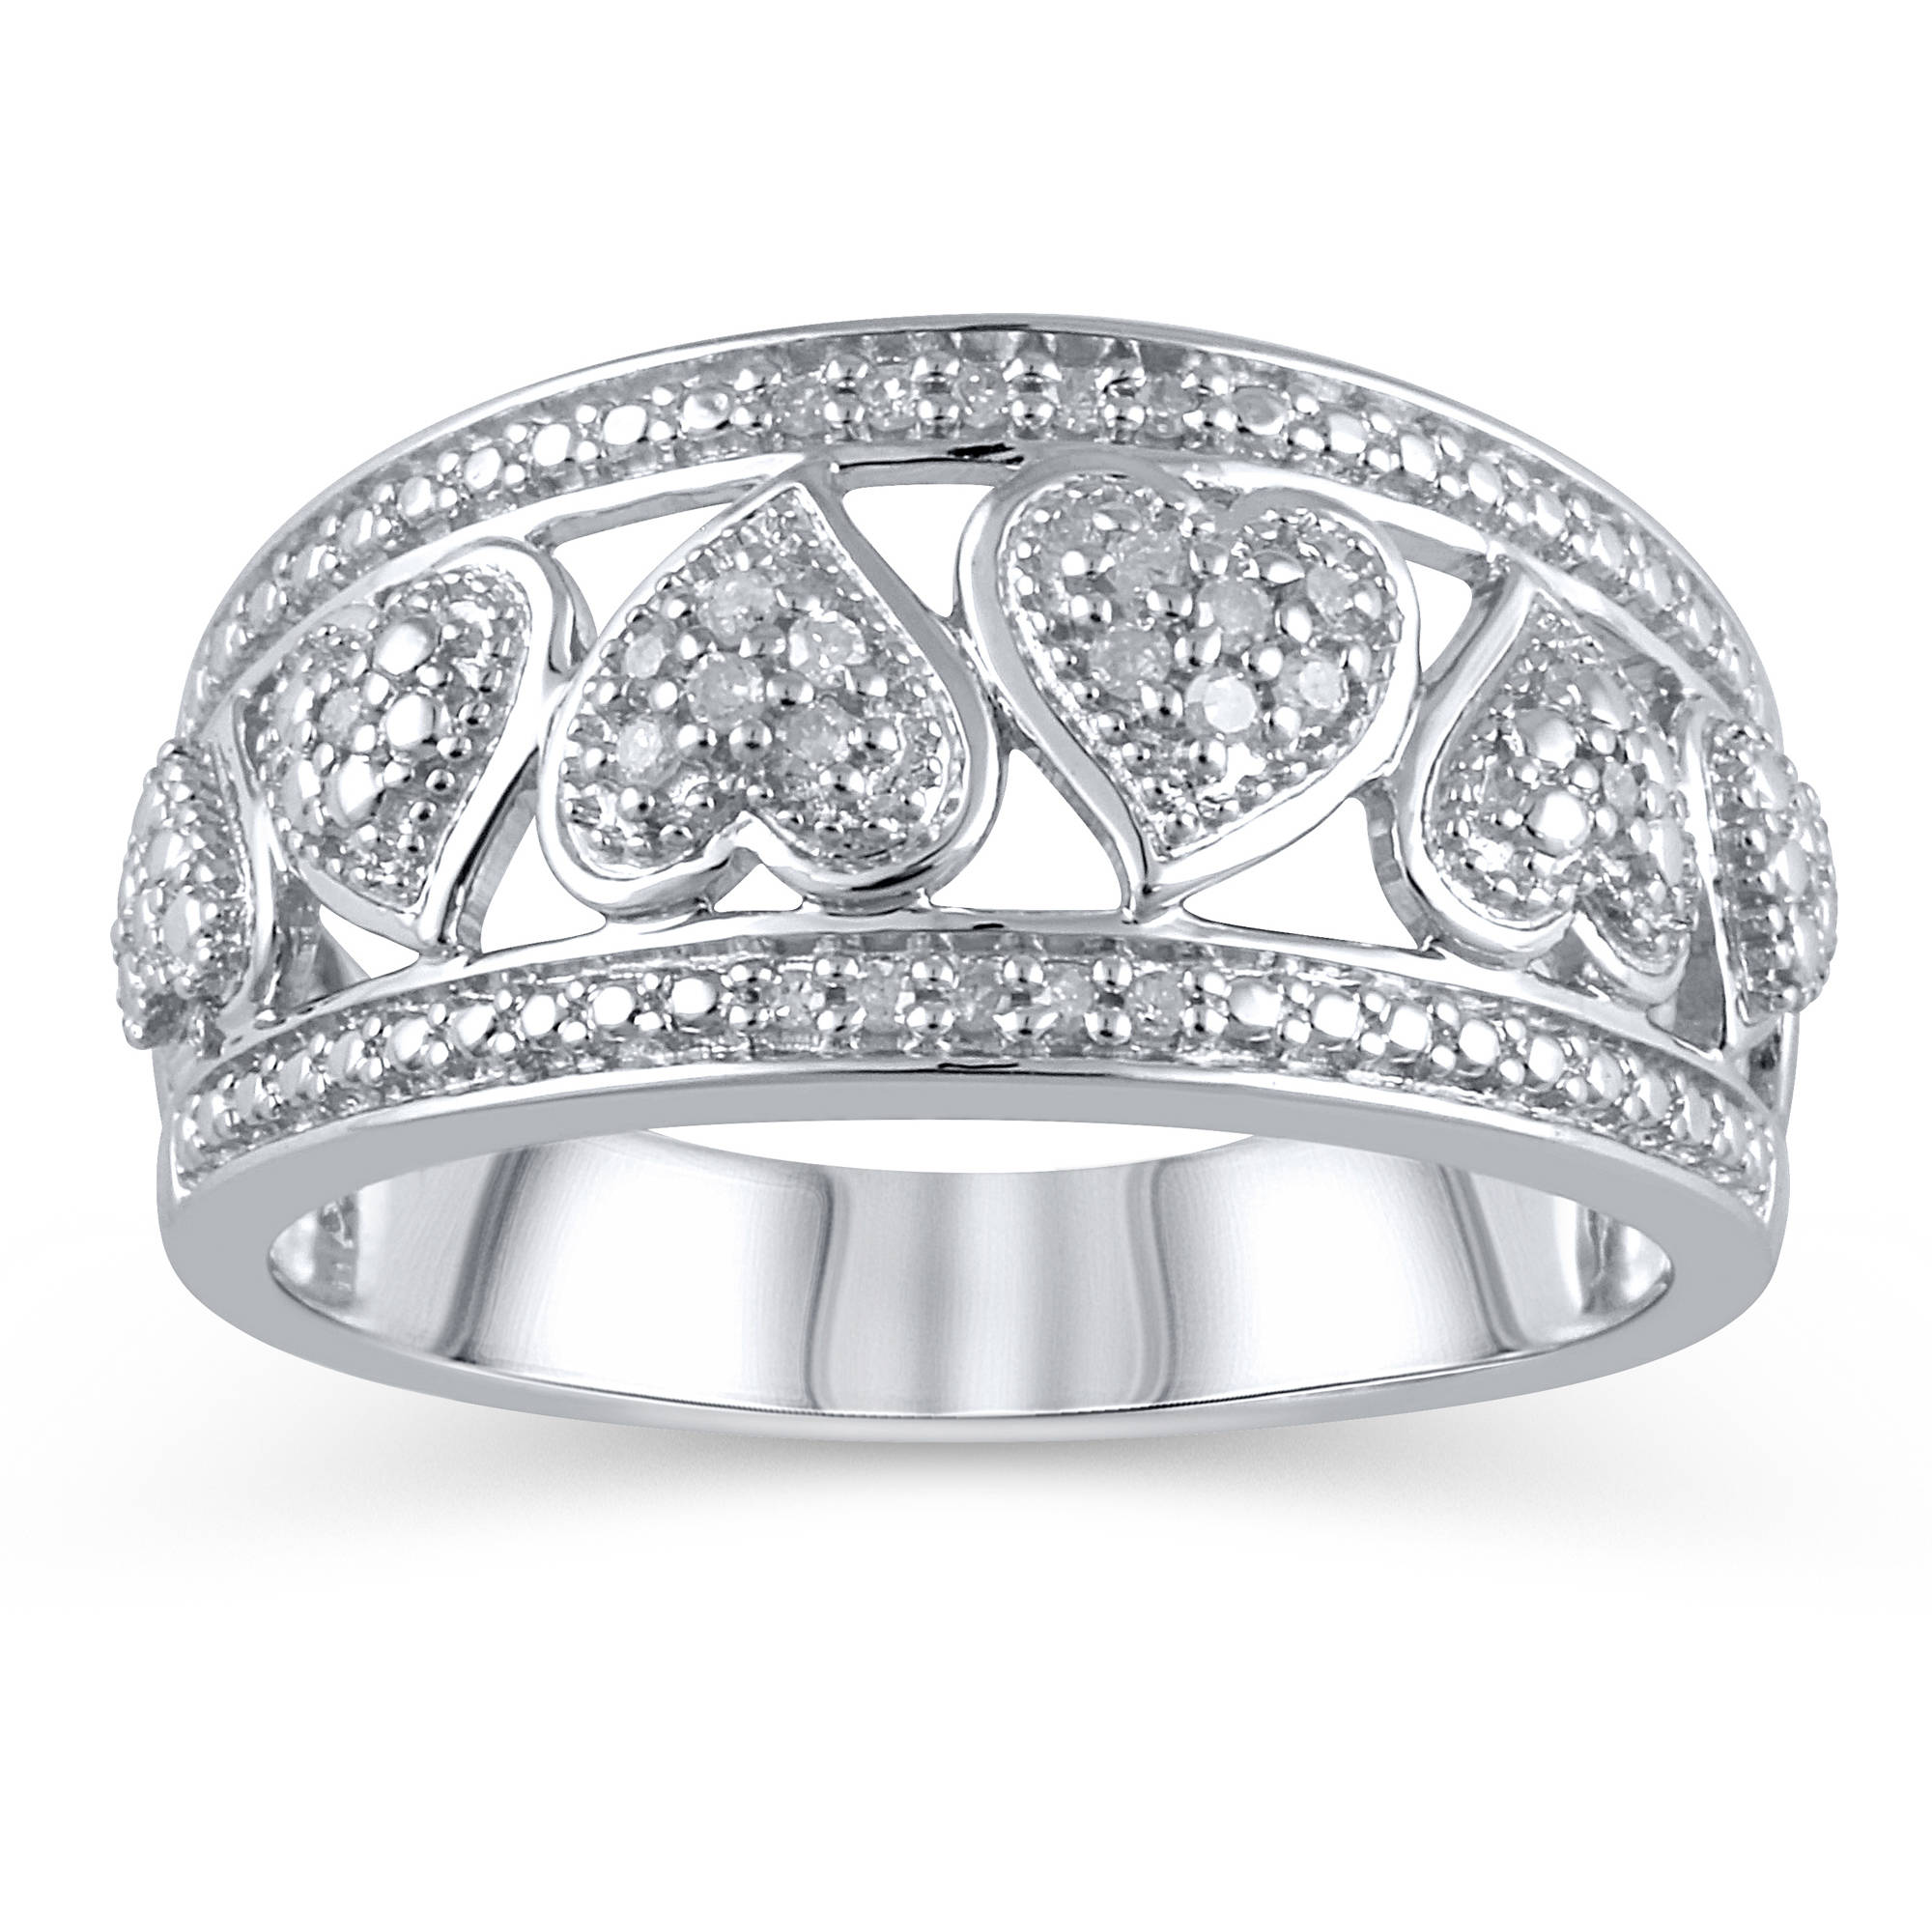 1/10 Carat T.W. Sterling Silver Heart Band